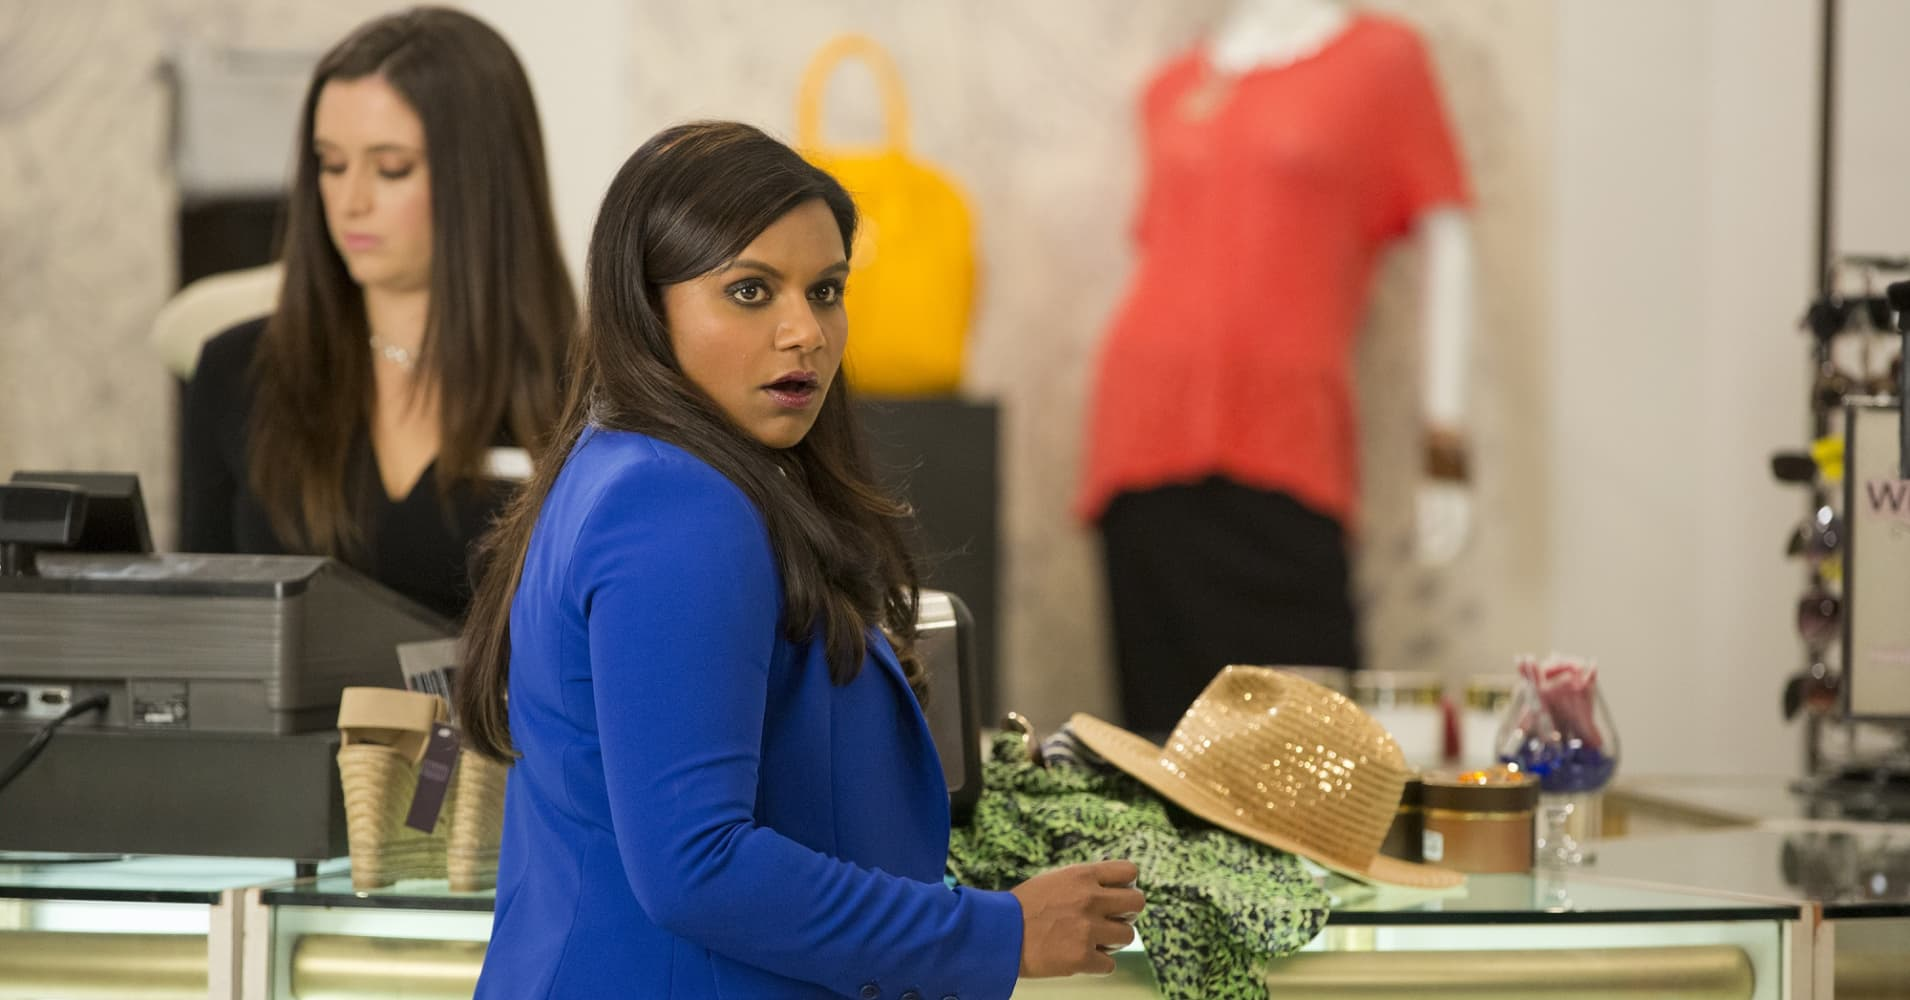 NBC's The Mindy Project